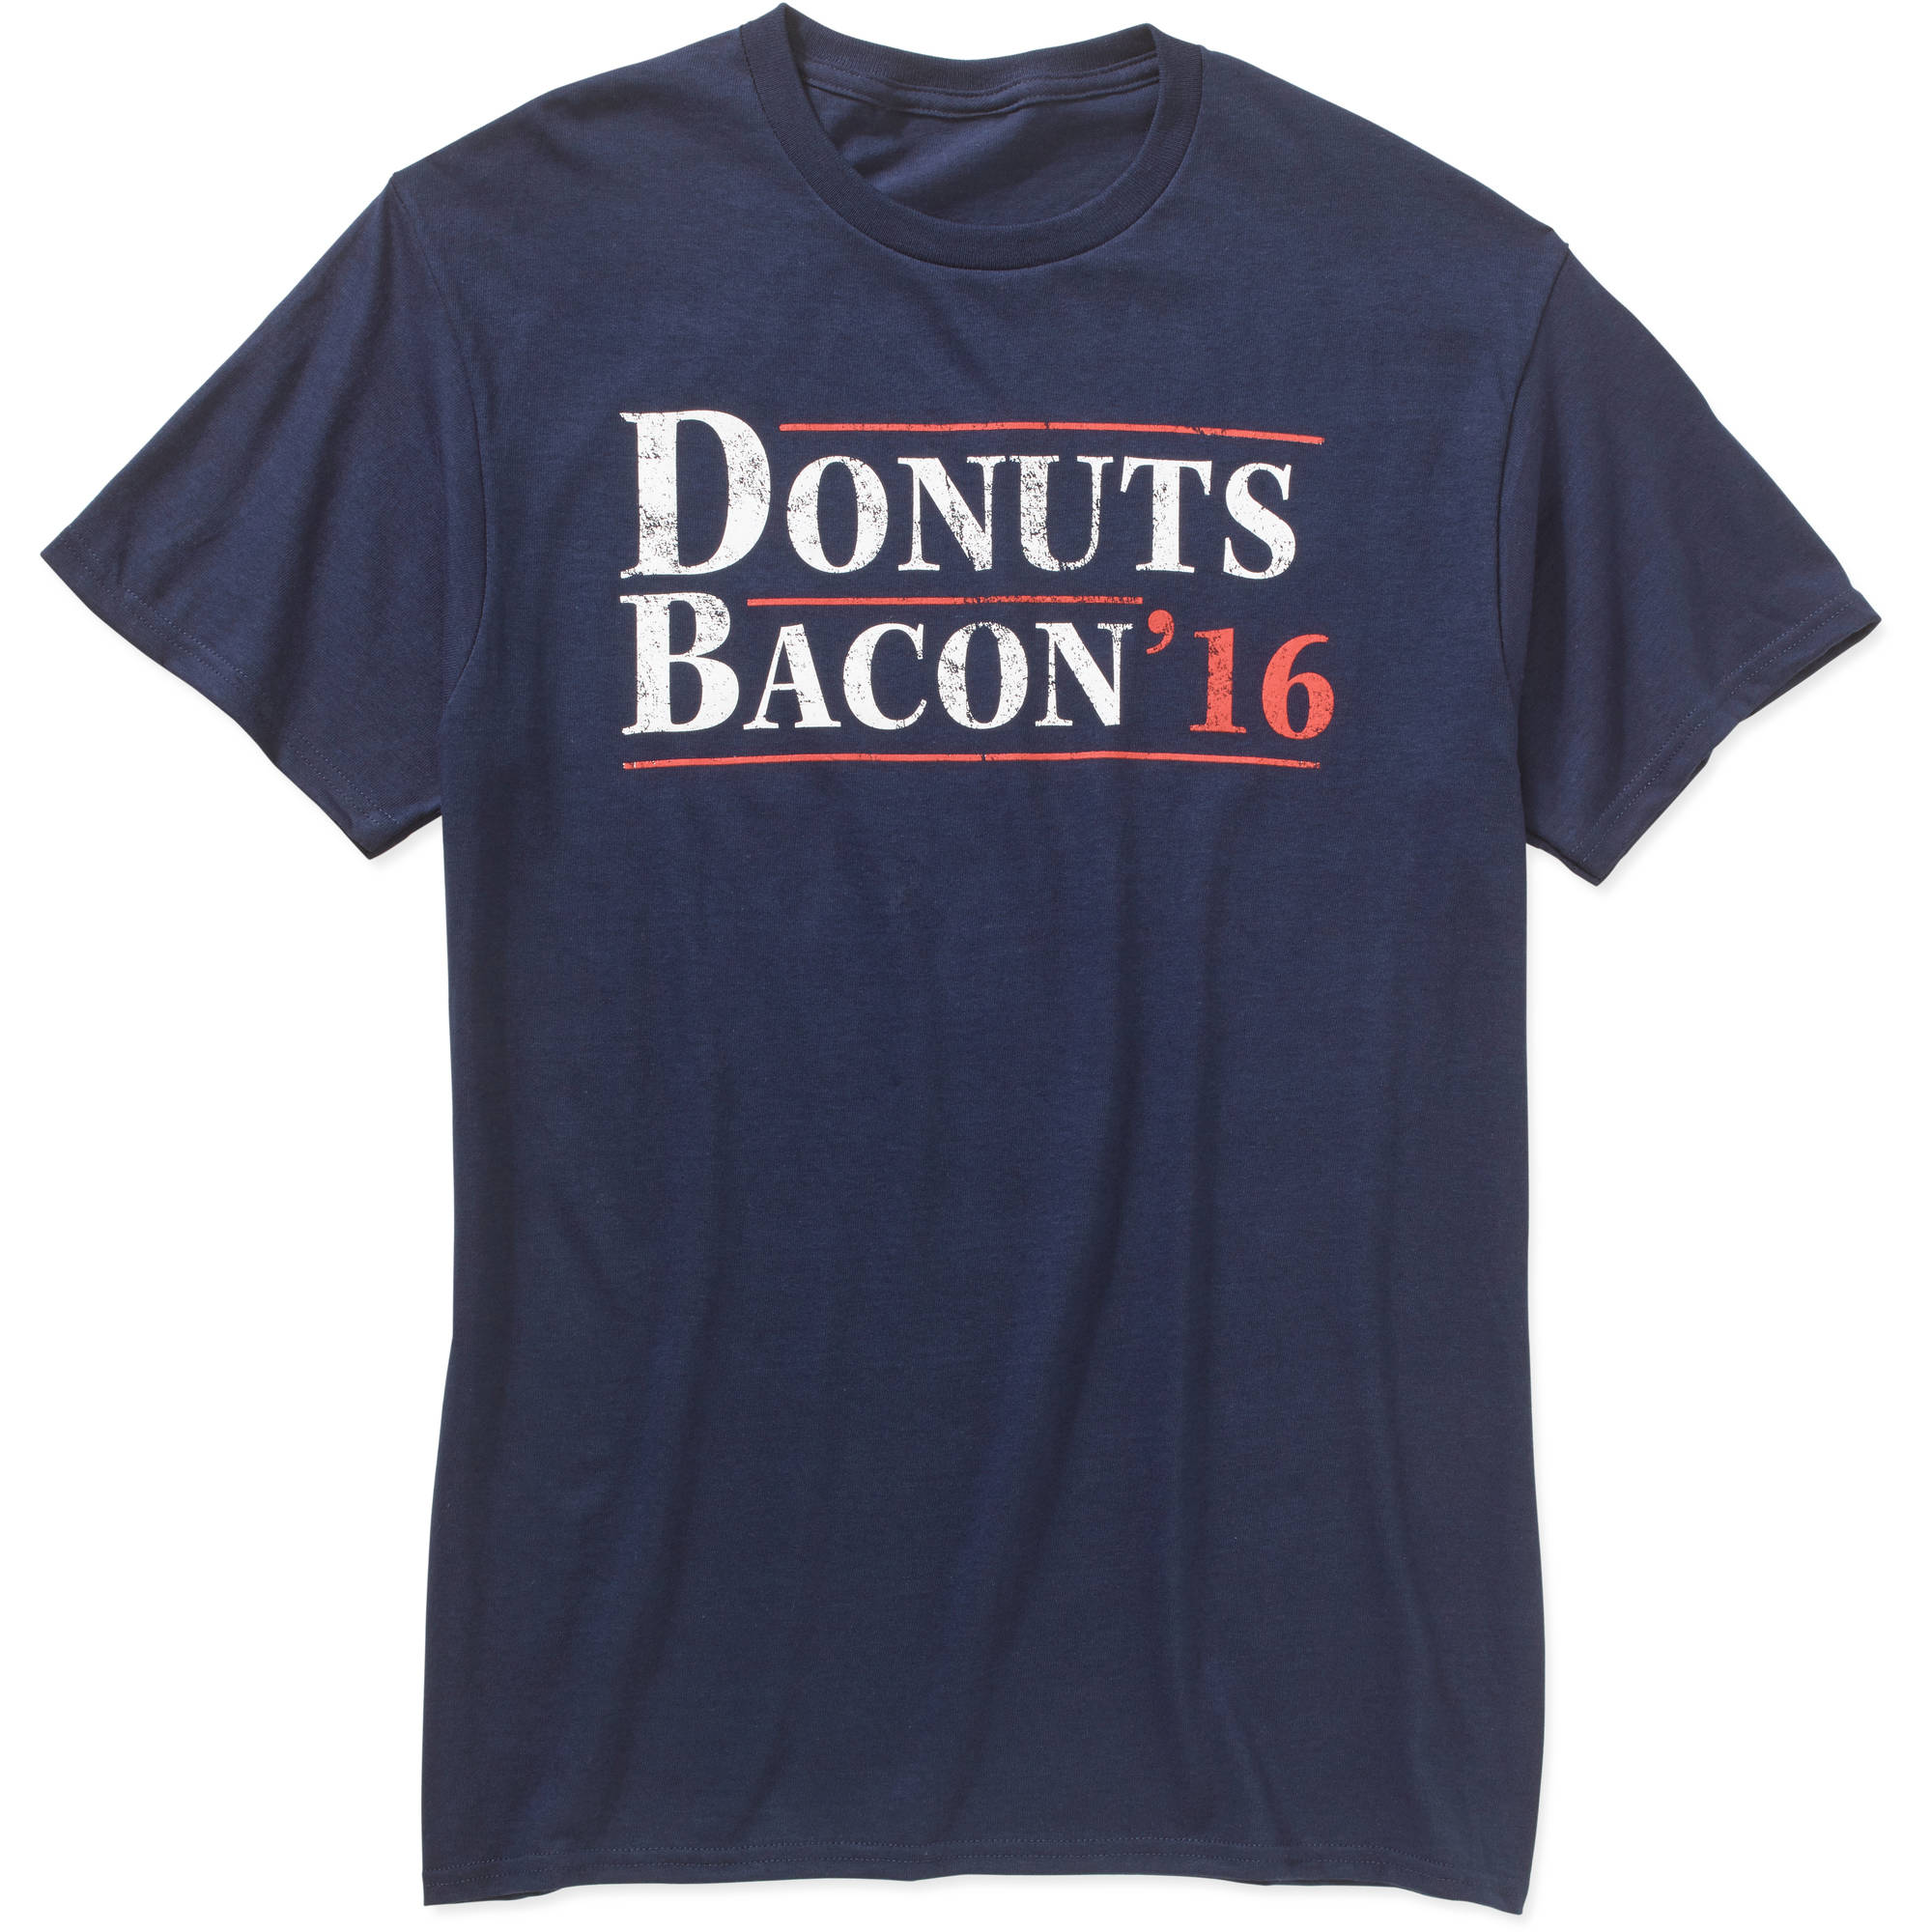 Donuts Bacon '16 Campaign Men's Graphic Tee